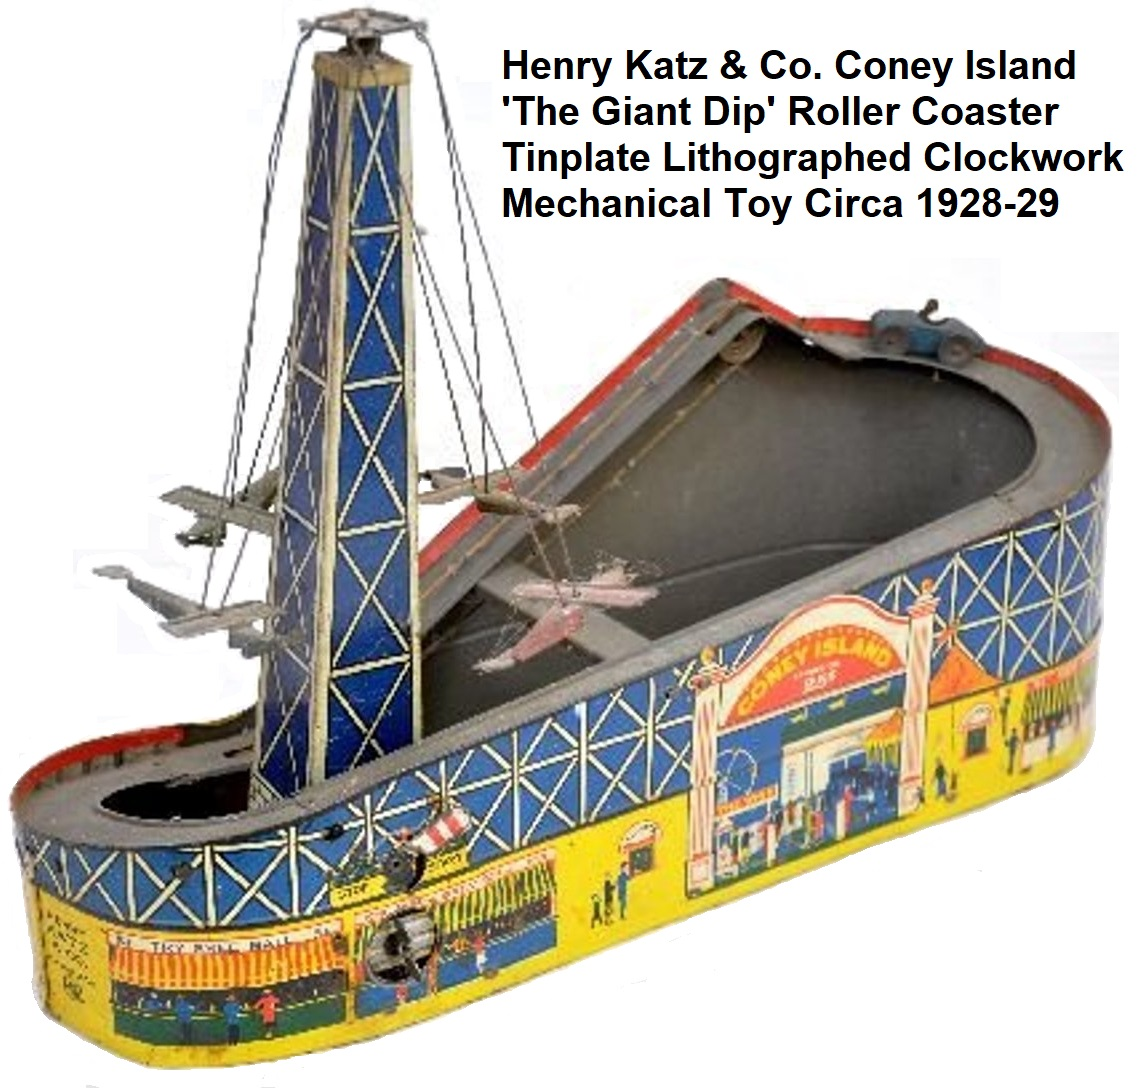 Henry Katz & Co. Tinplate Lithographed 'The Giant Dip' Coney Island Roller Coaster Toy circa 1928-29